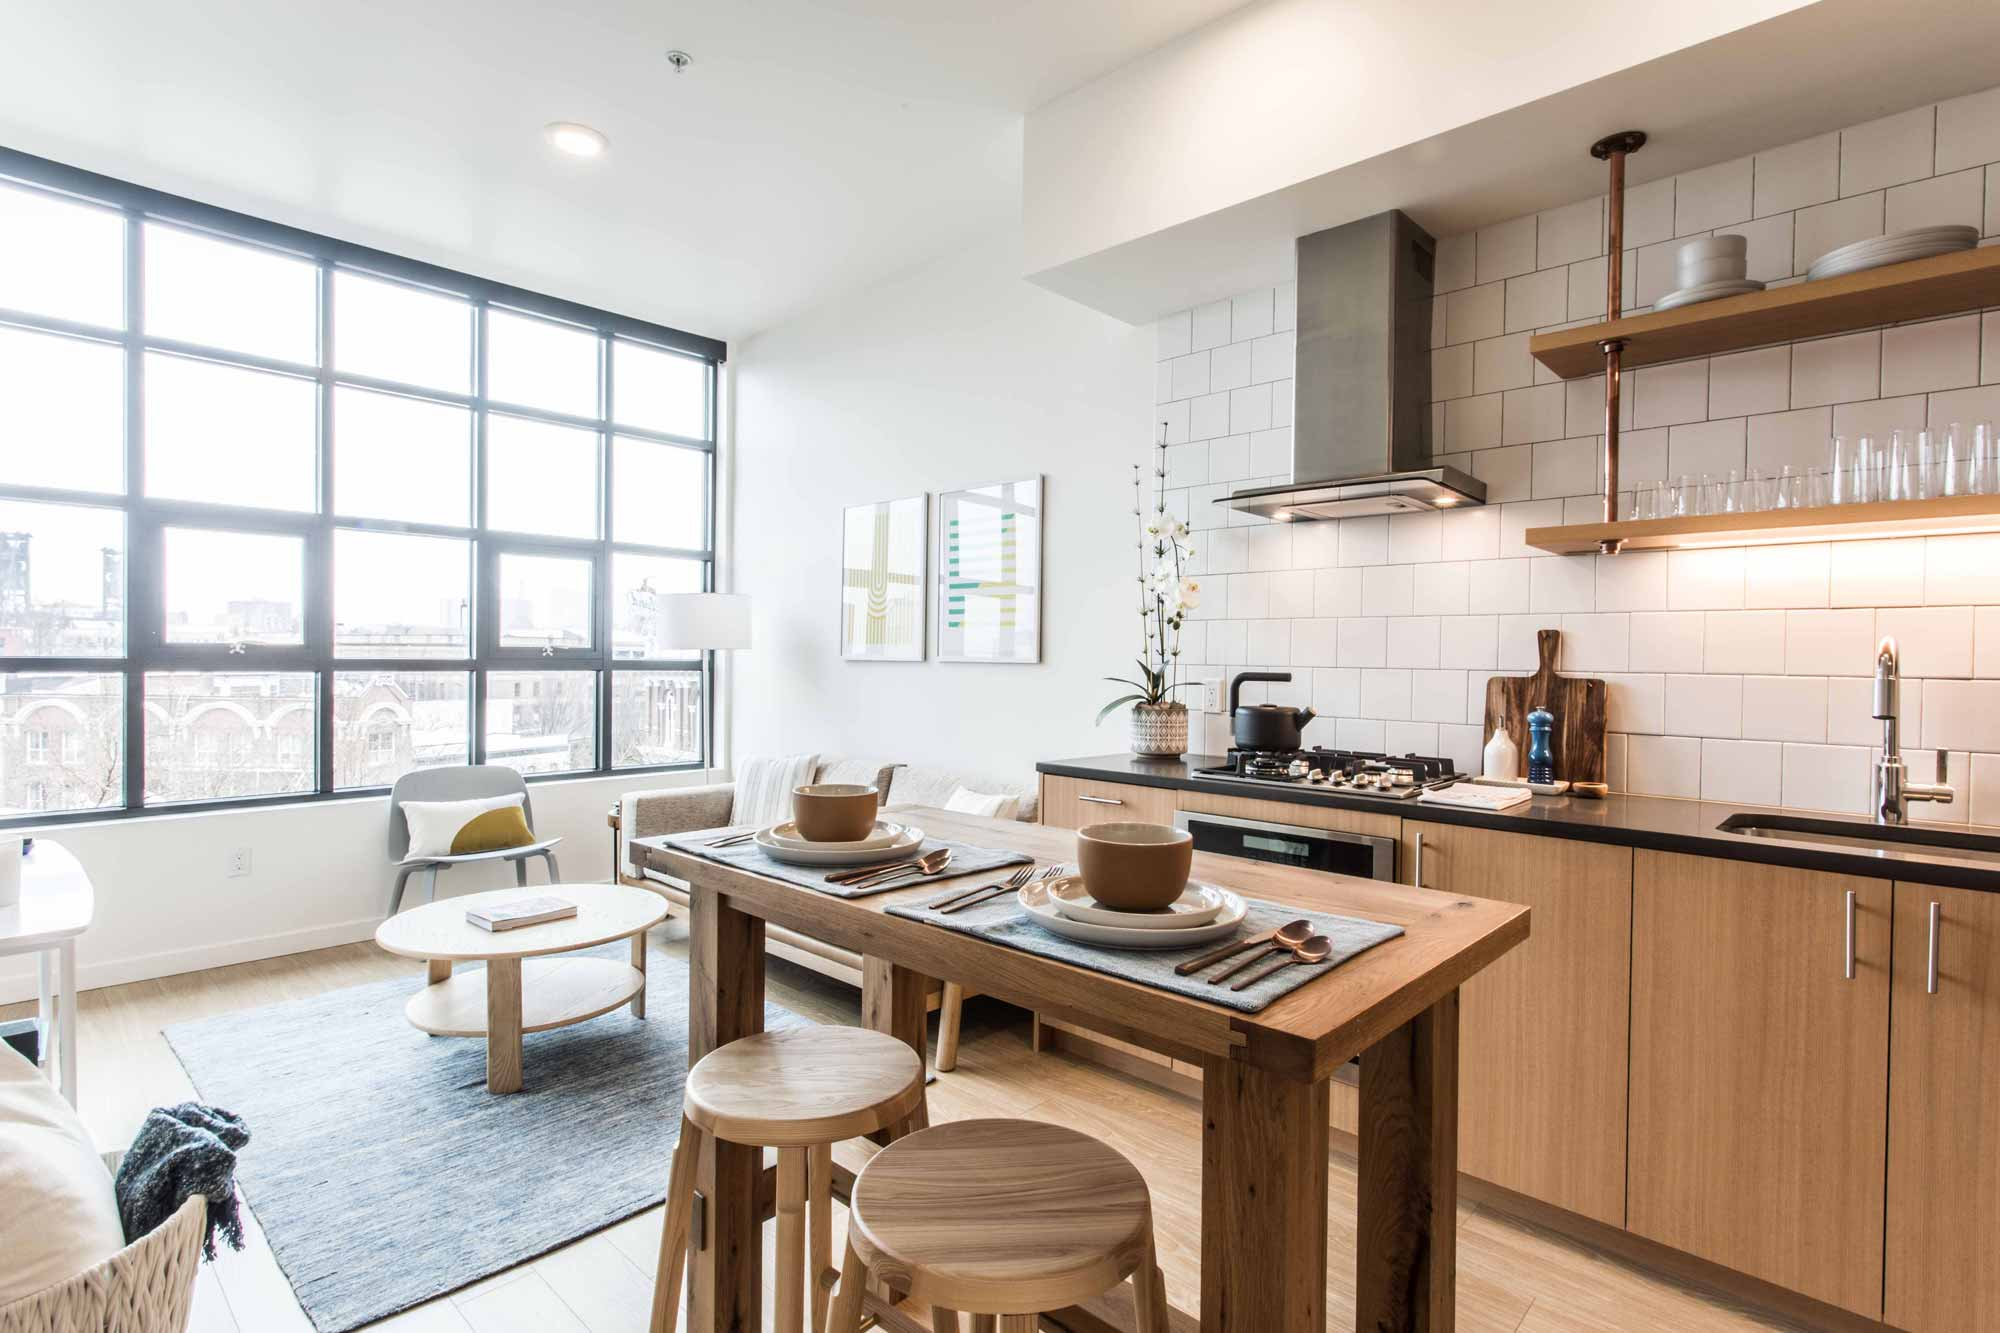 Contemporary kitchen design at 230 Ash luxury apartments in downtown Portland